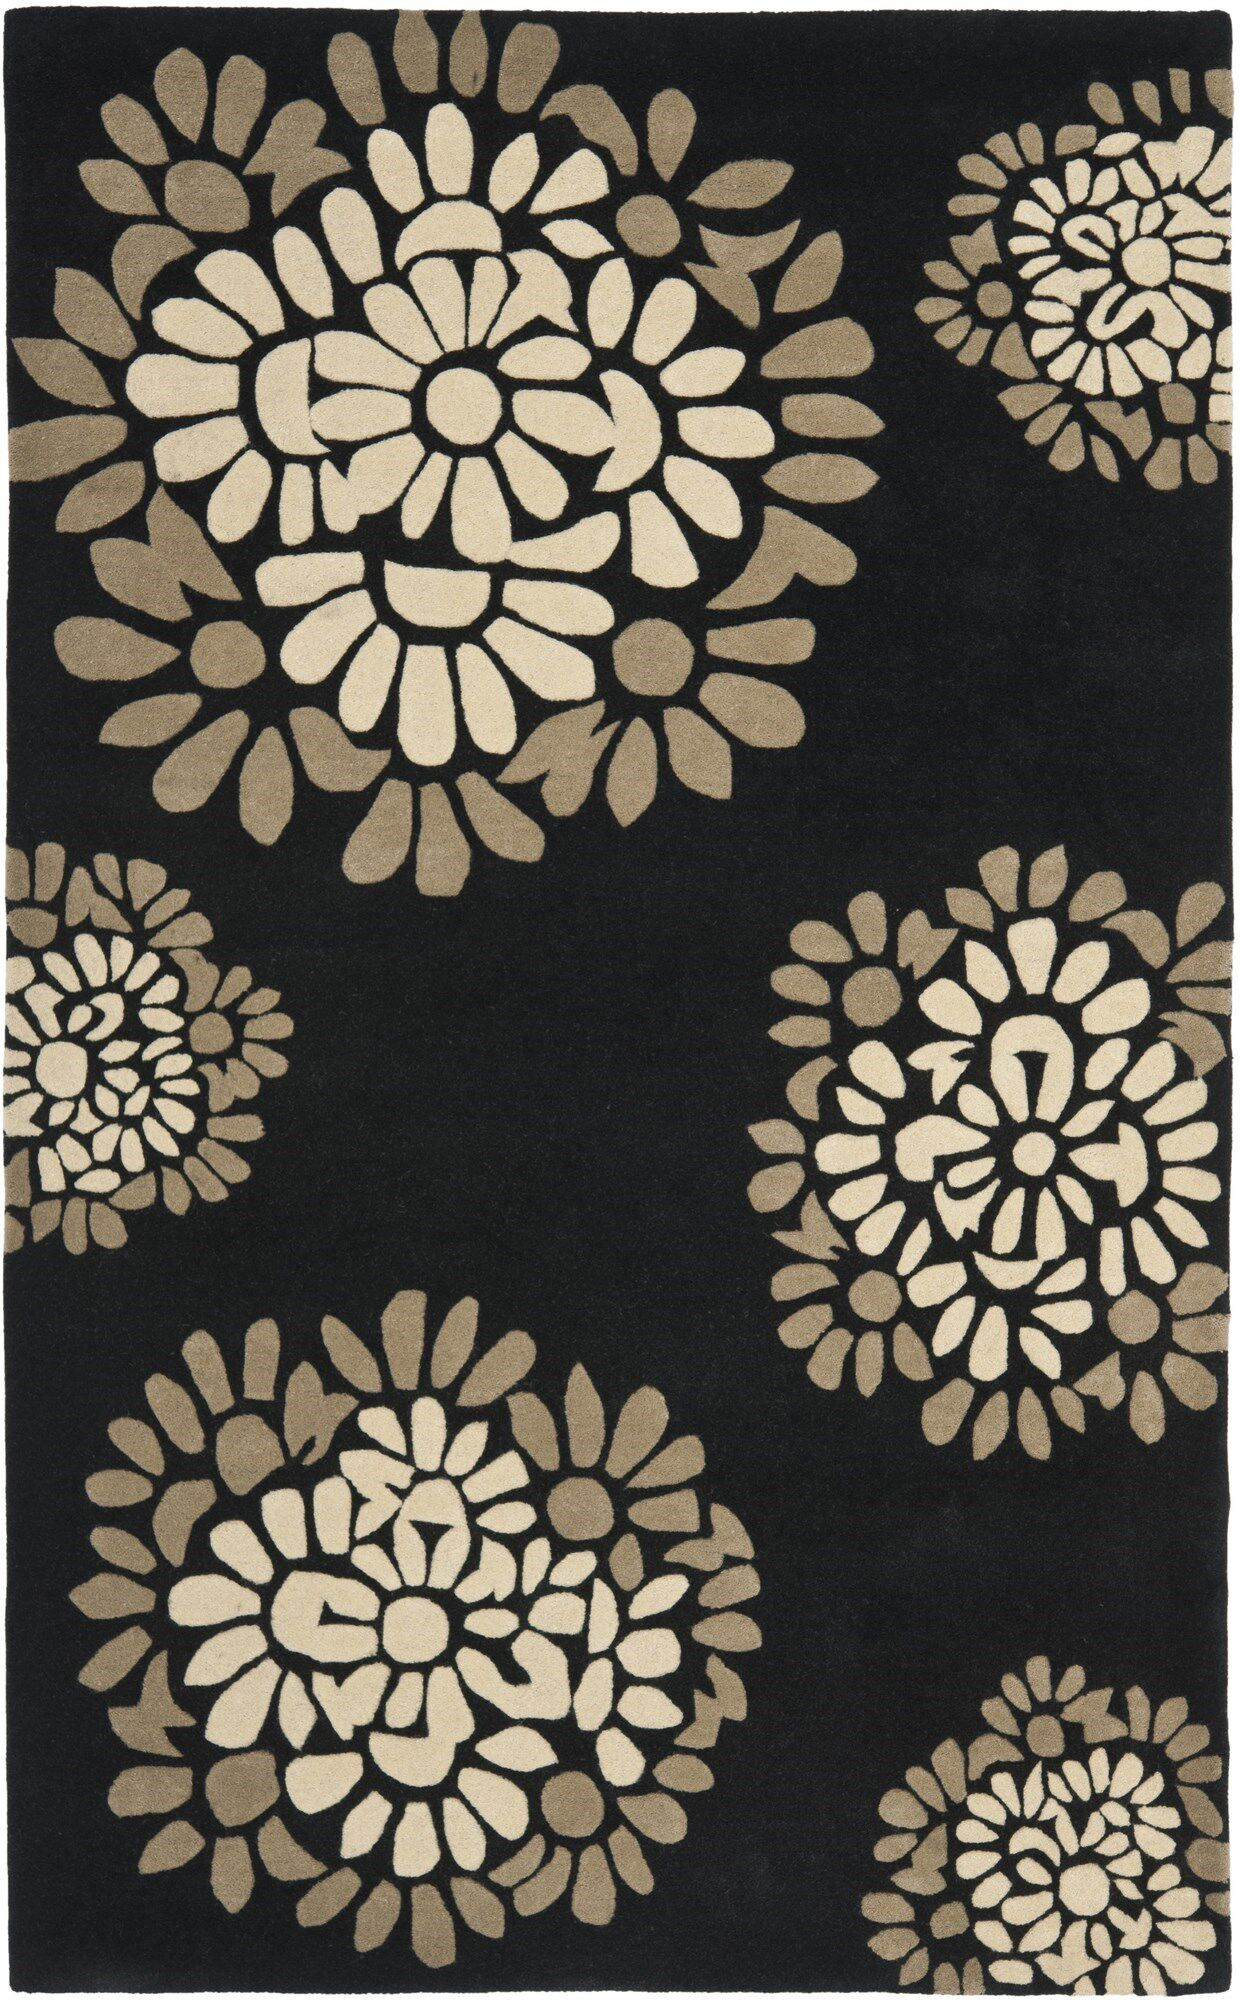 Sunny Petal Mosaic Hand Tufted Wool/Cotton Silhouette Area Rug Rug Size: Rectangle 9'6